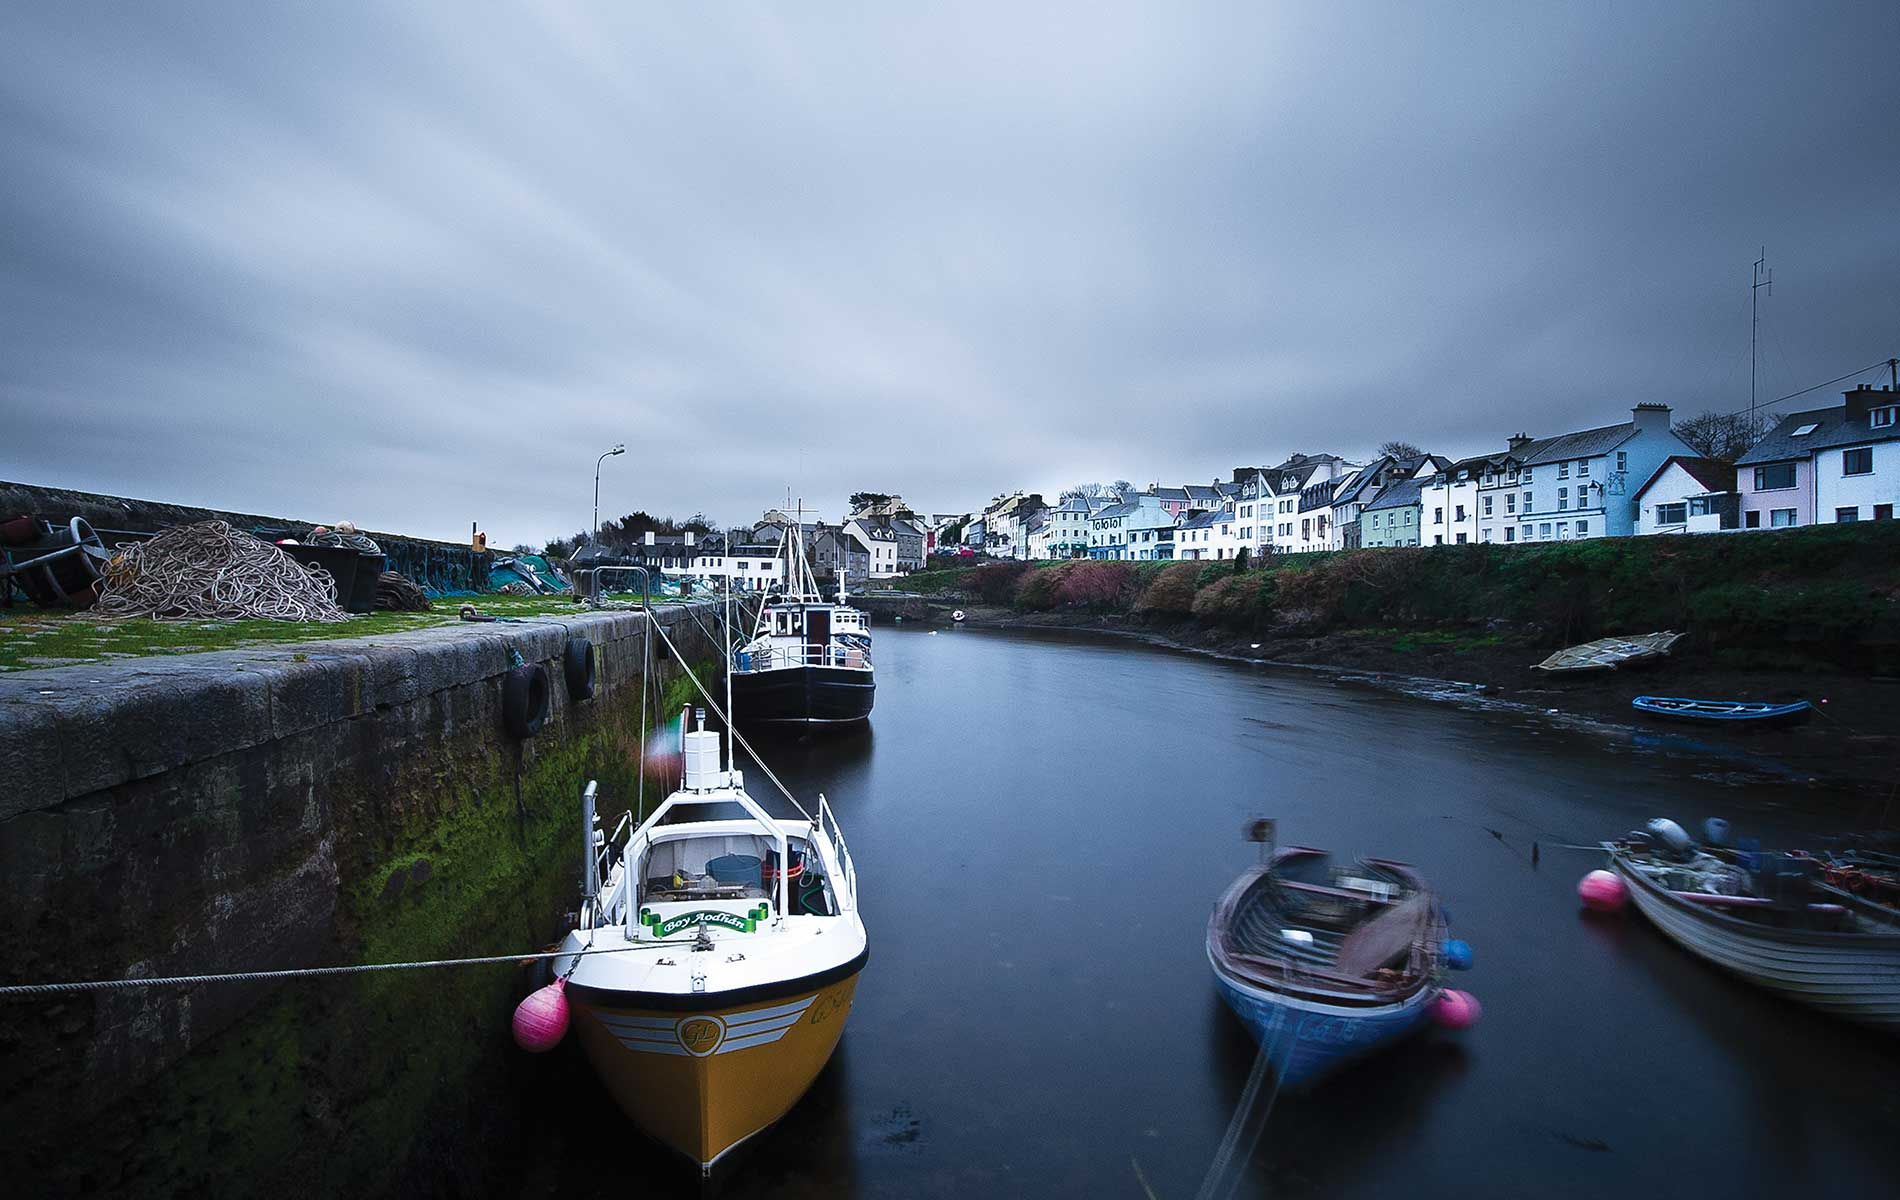 Connemara Life, Roundstone, harbor, boats